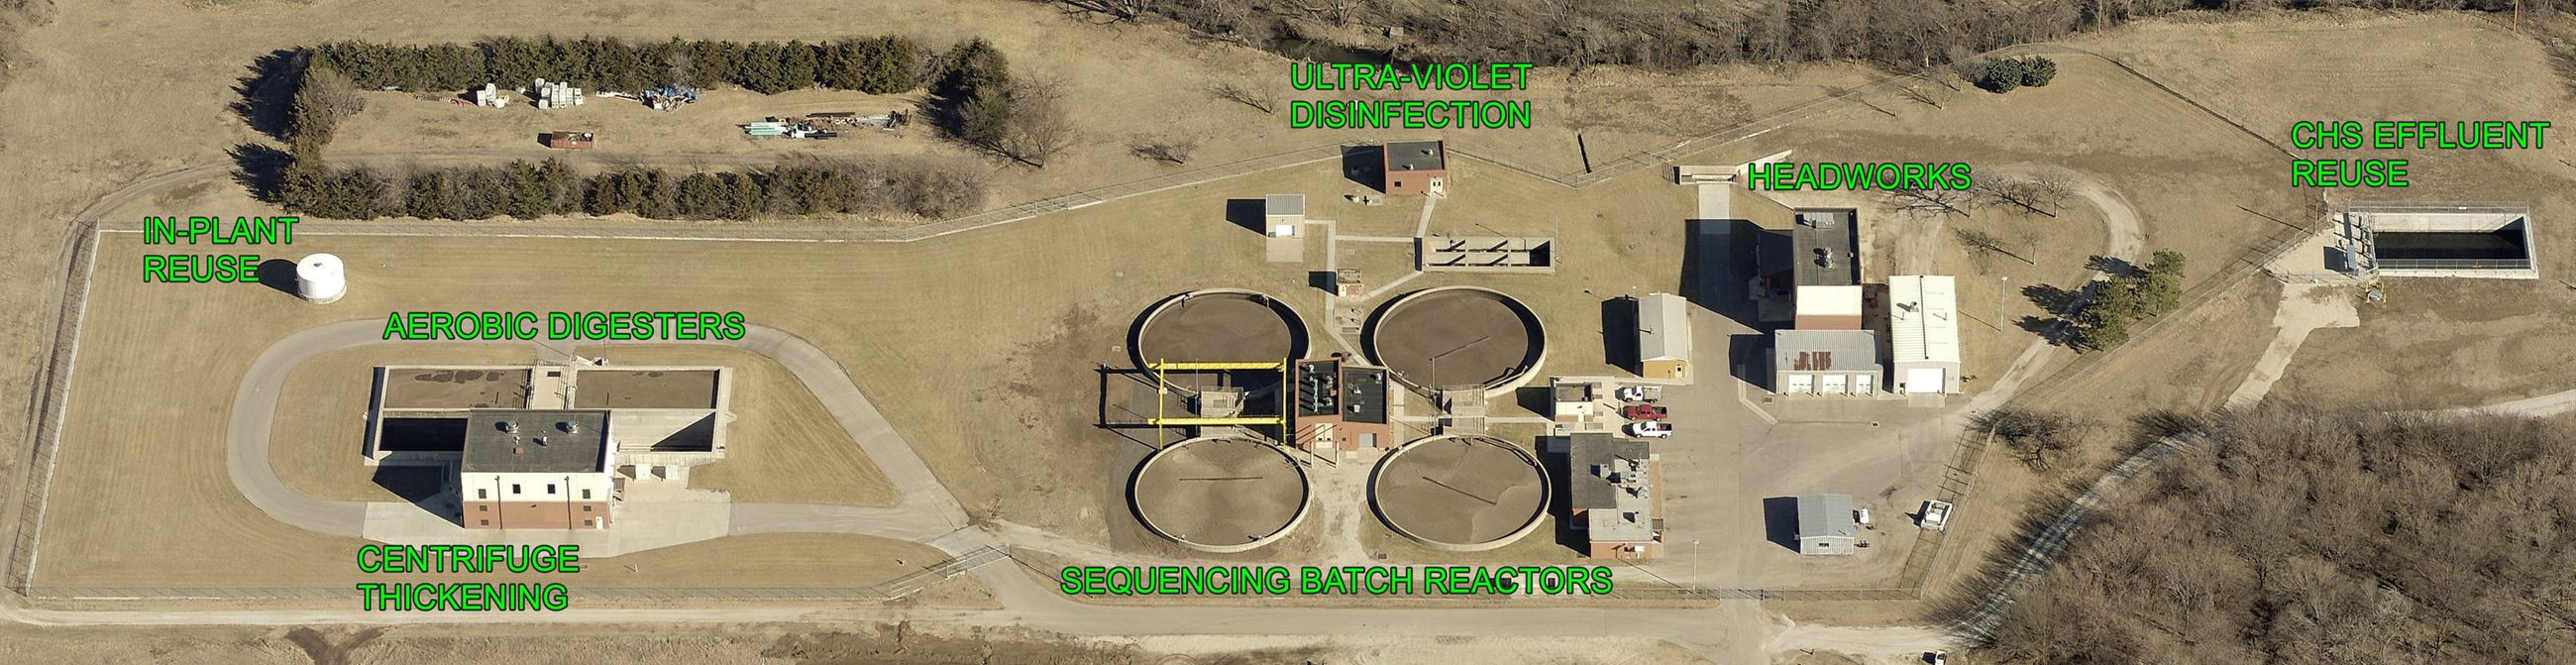 Wastewater Facility Aerial View